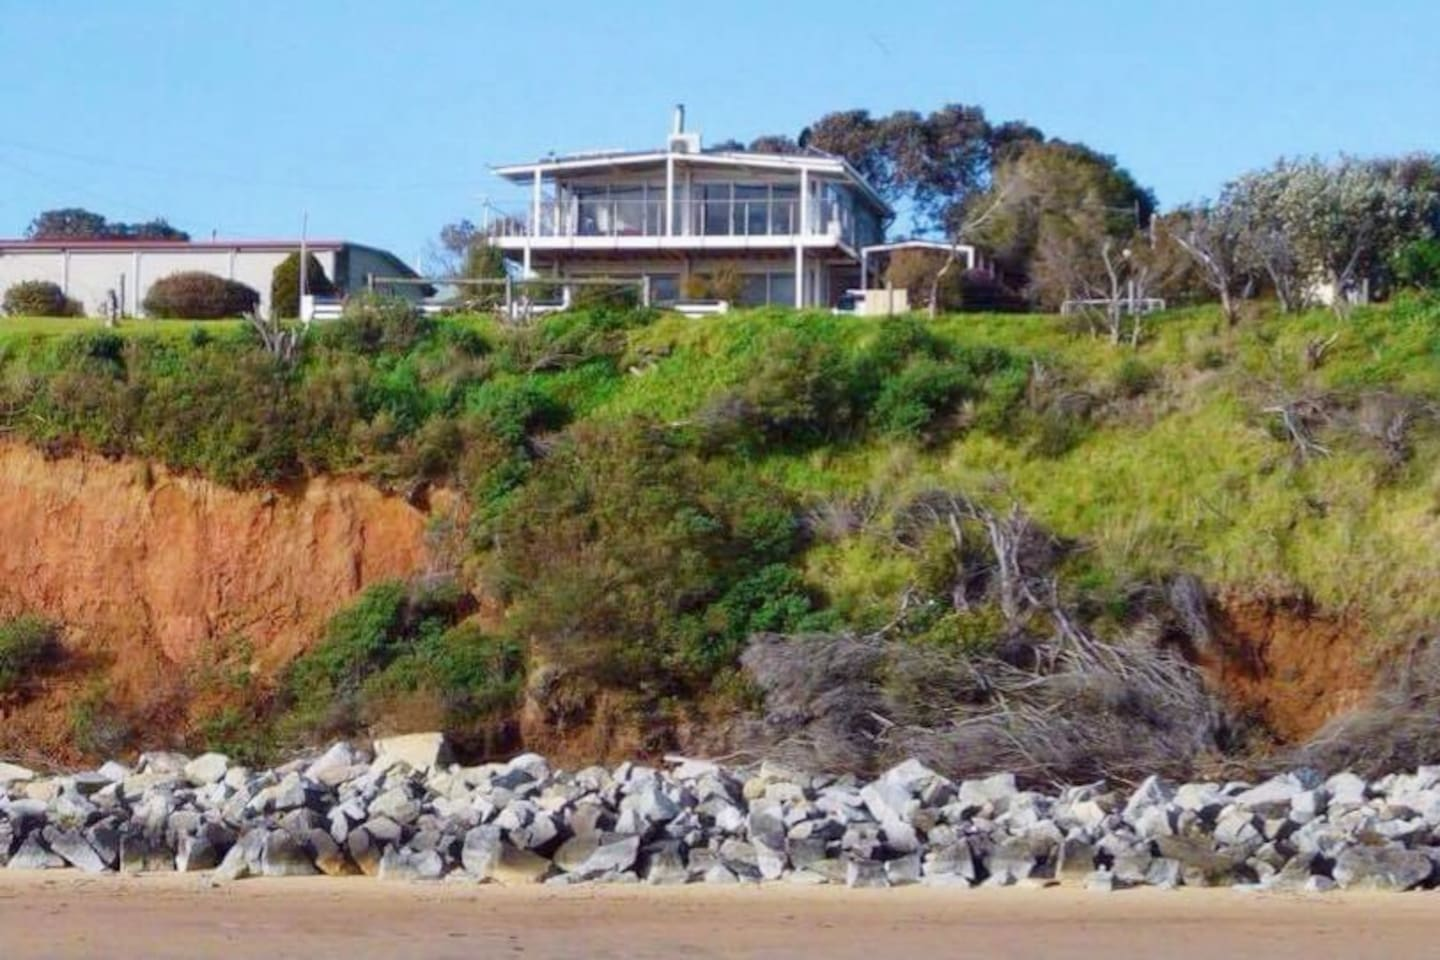 """Perched on cliffs overlooking the sea. """"This place is so great. Right on an elevated beachfront, with beautiful views and so very peaceful"""""""